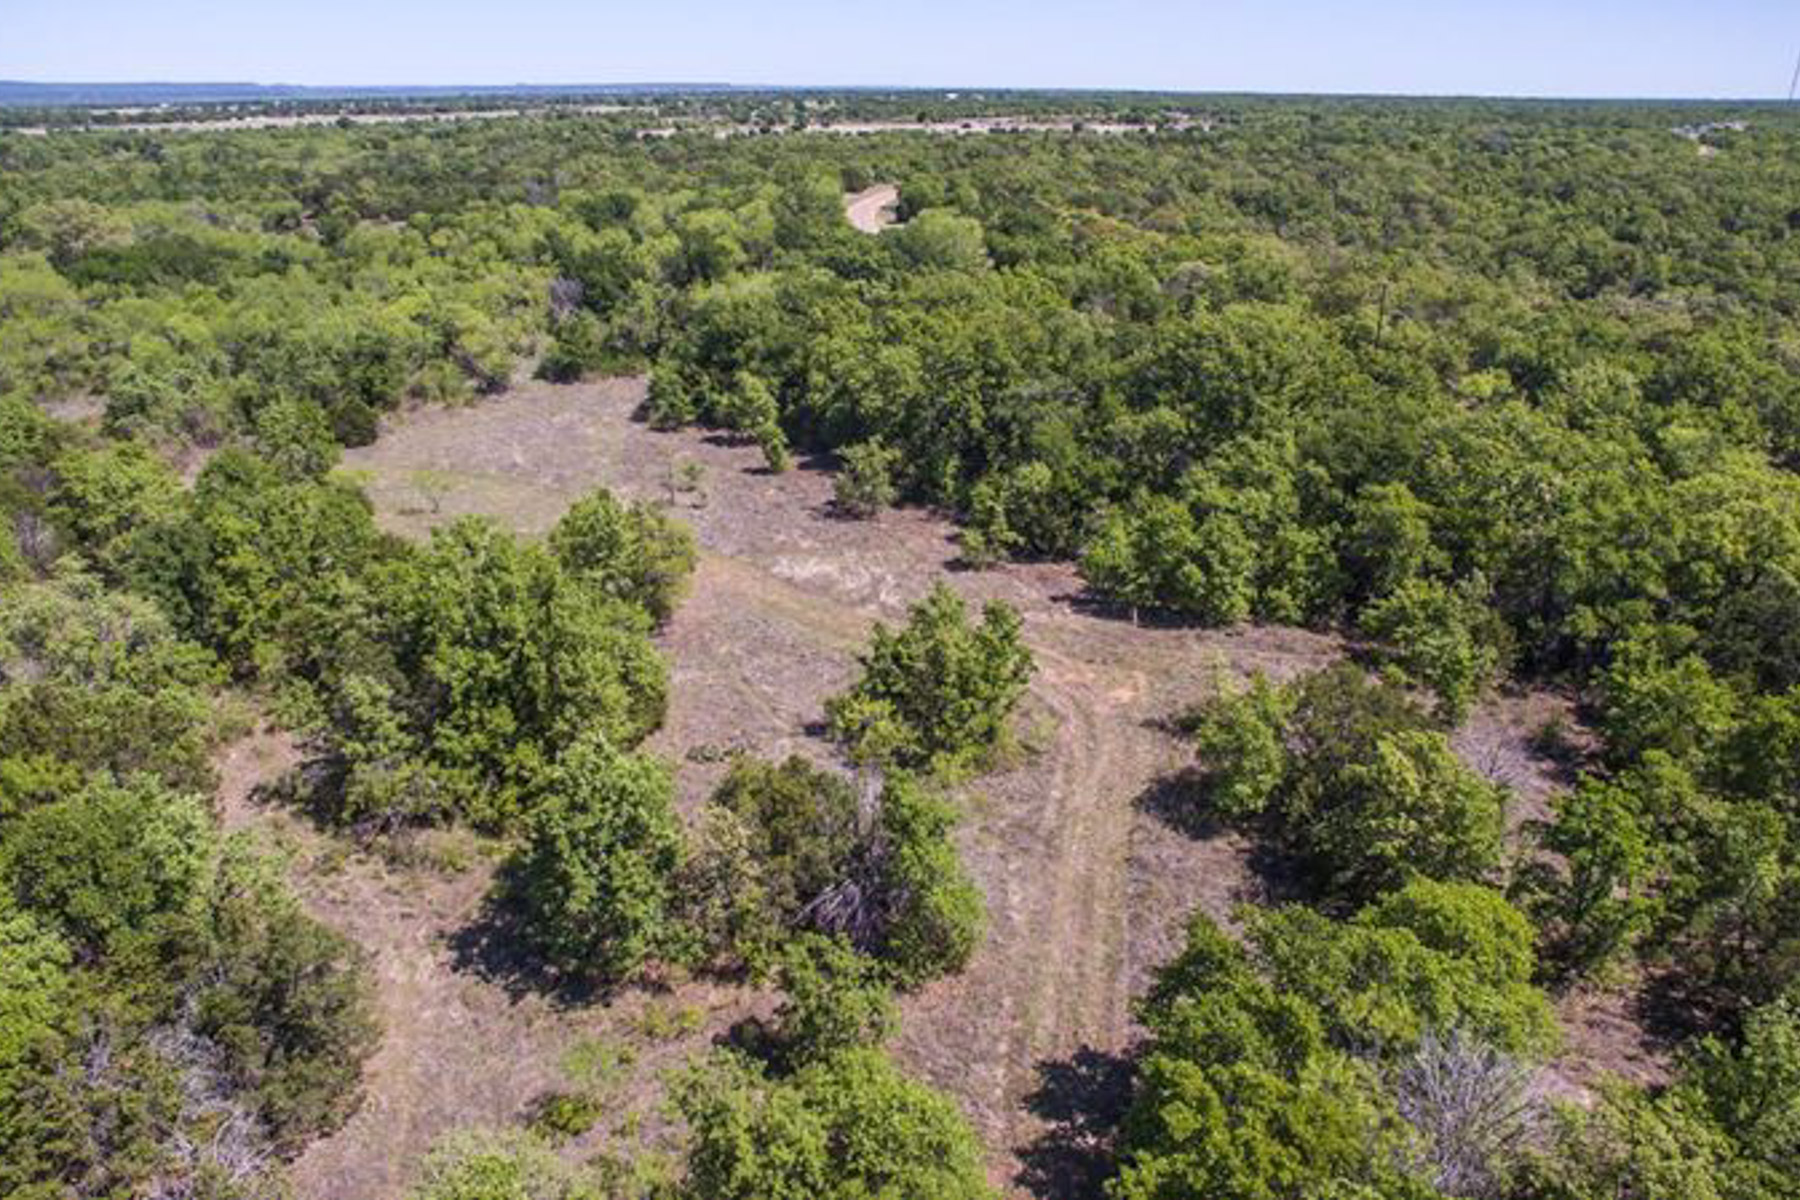 Land for Sale at 0005 N Lakeview Drive, Palo Pinto Palo Pinto, Texas, 76484 United States